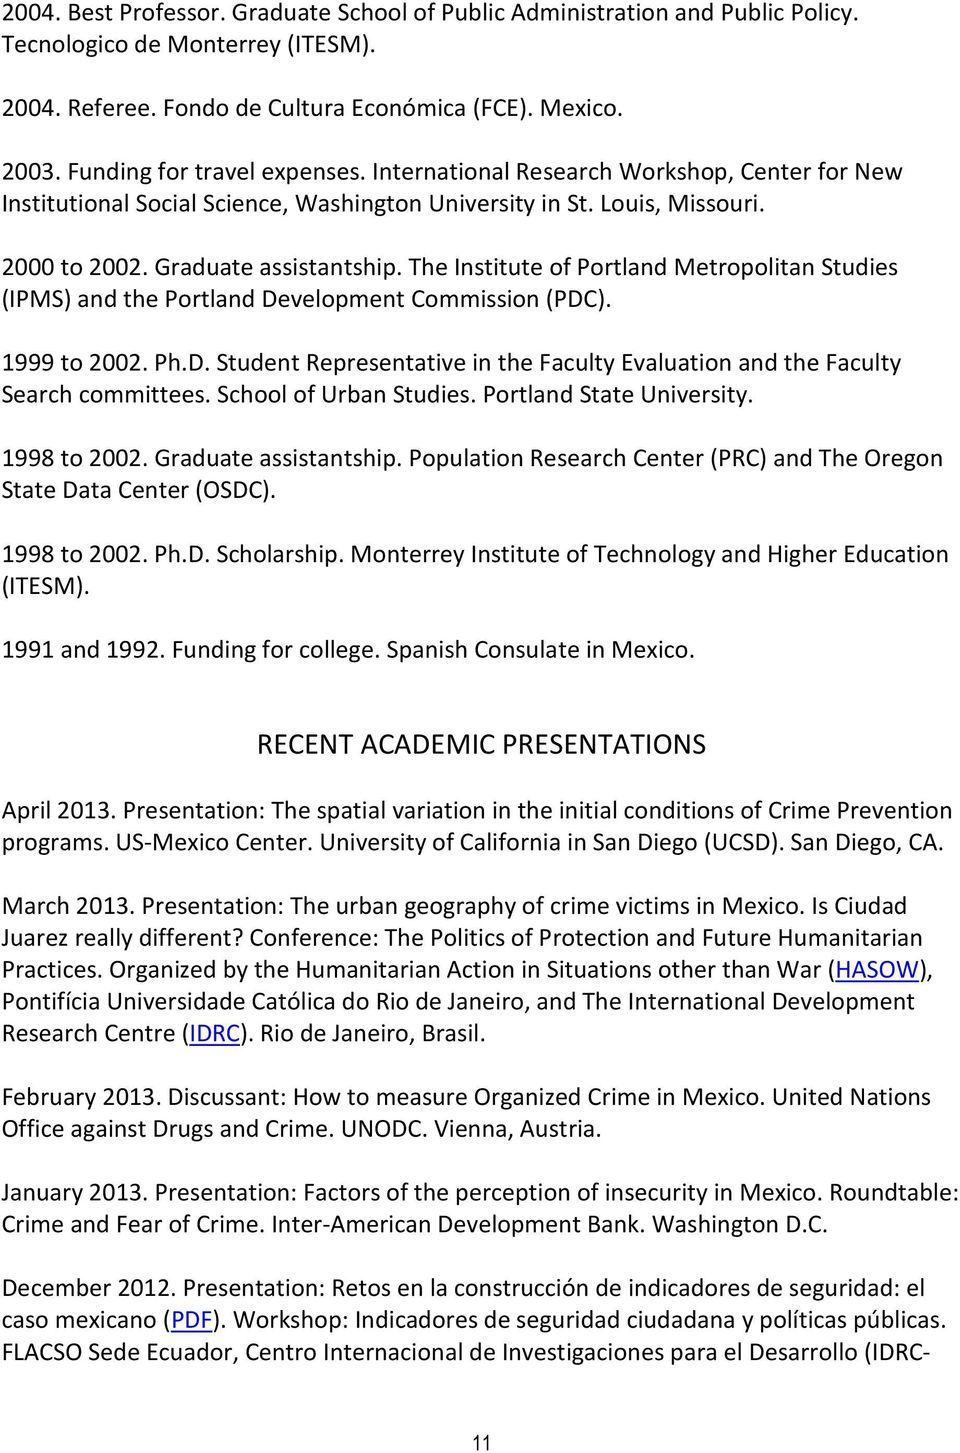 The Institute of Portland Metropolitan Studies (IPMS) and the Portland Development Commission (PDC). 1999 to 2002. Ph.D. Student Representative in the Faculty Evaluation and the Faculty Search committees.